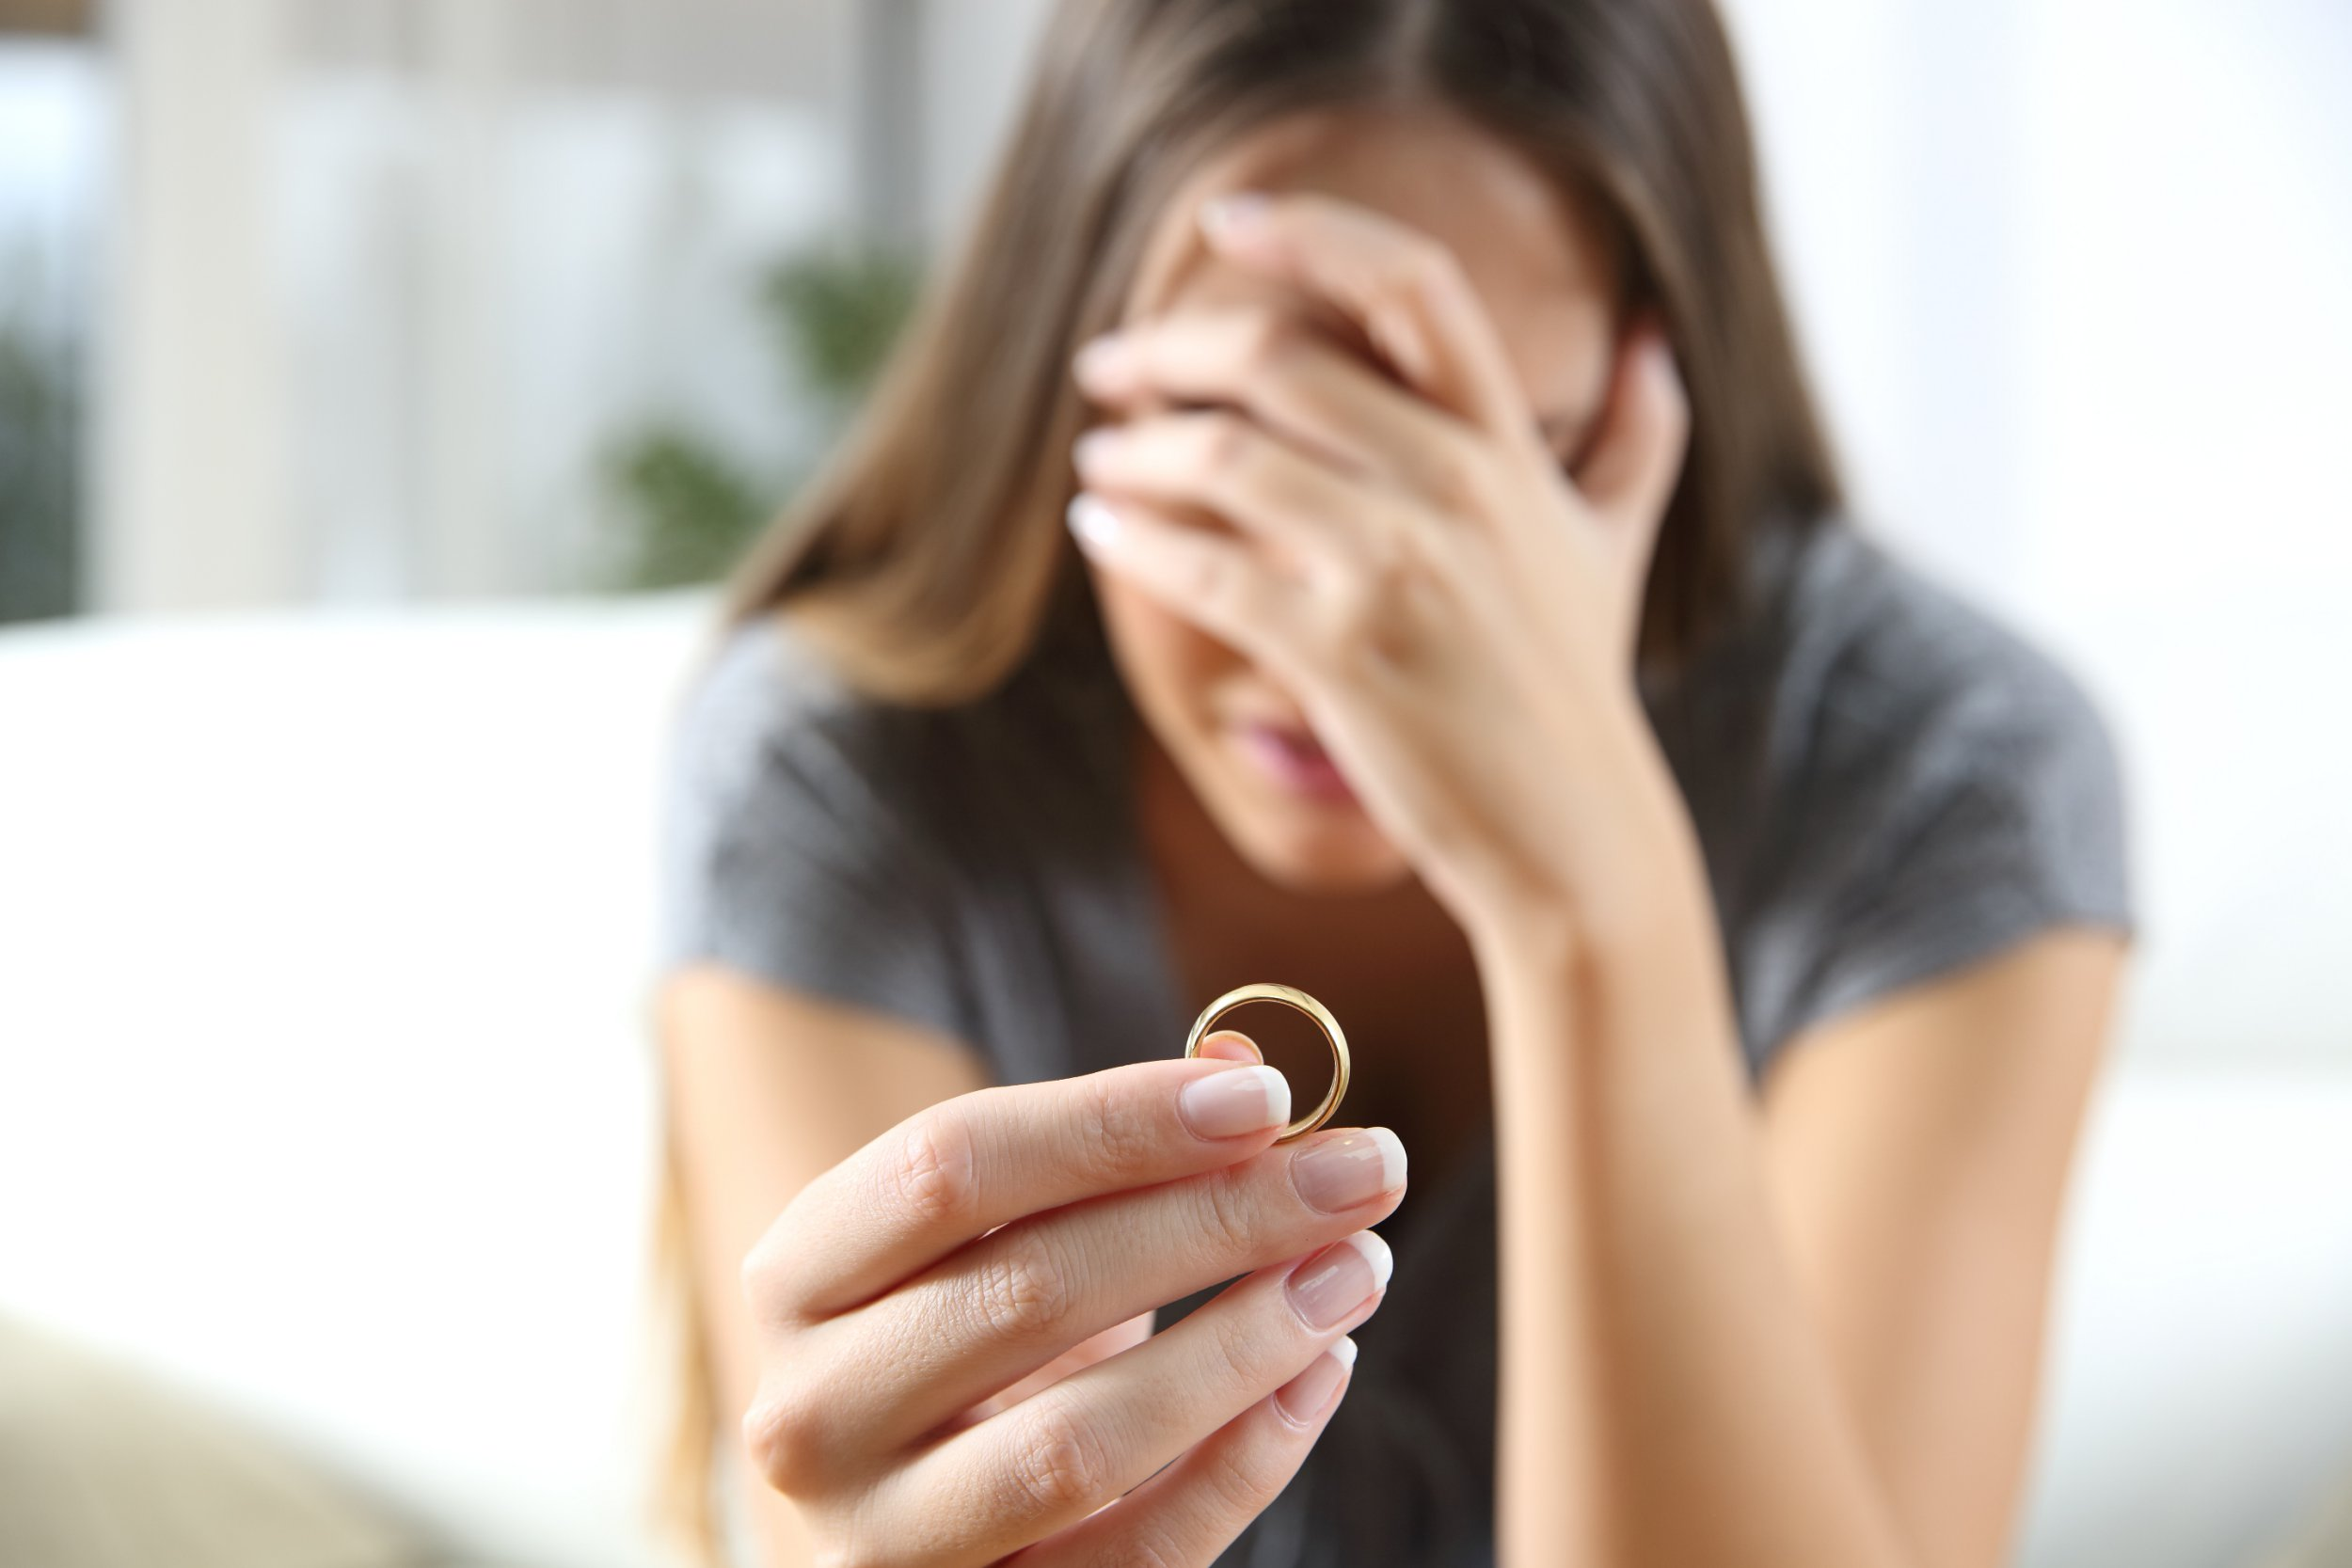 Closeup of a single sad wife after divorce lamenting holding the wedding ring in a house interior; Shutterstock ID 511166536; Purchase Order: -